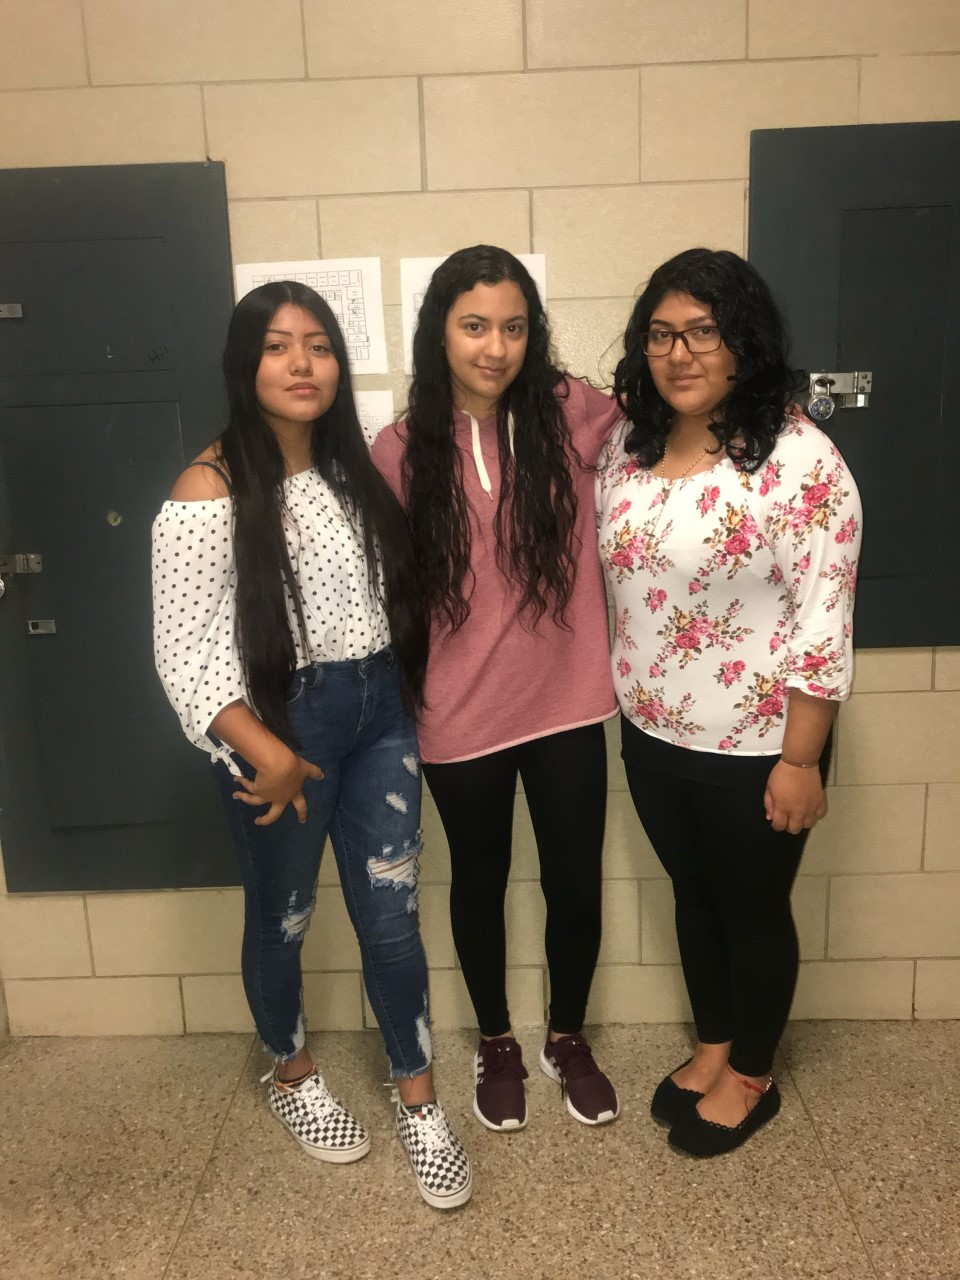 Isabel Roblero, Bianca Ochoa, and Anai Perez Hernandez look forward into being able to asist many teachers.